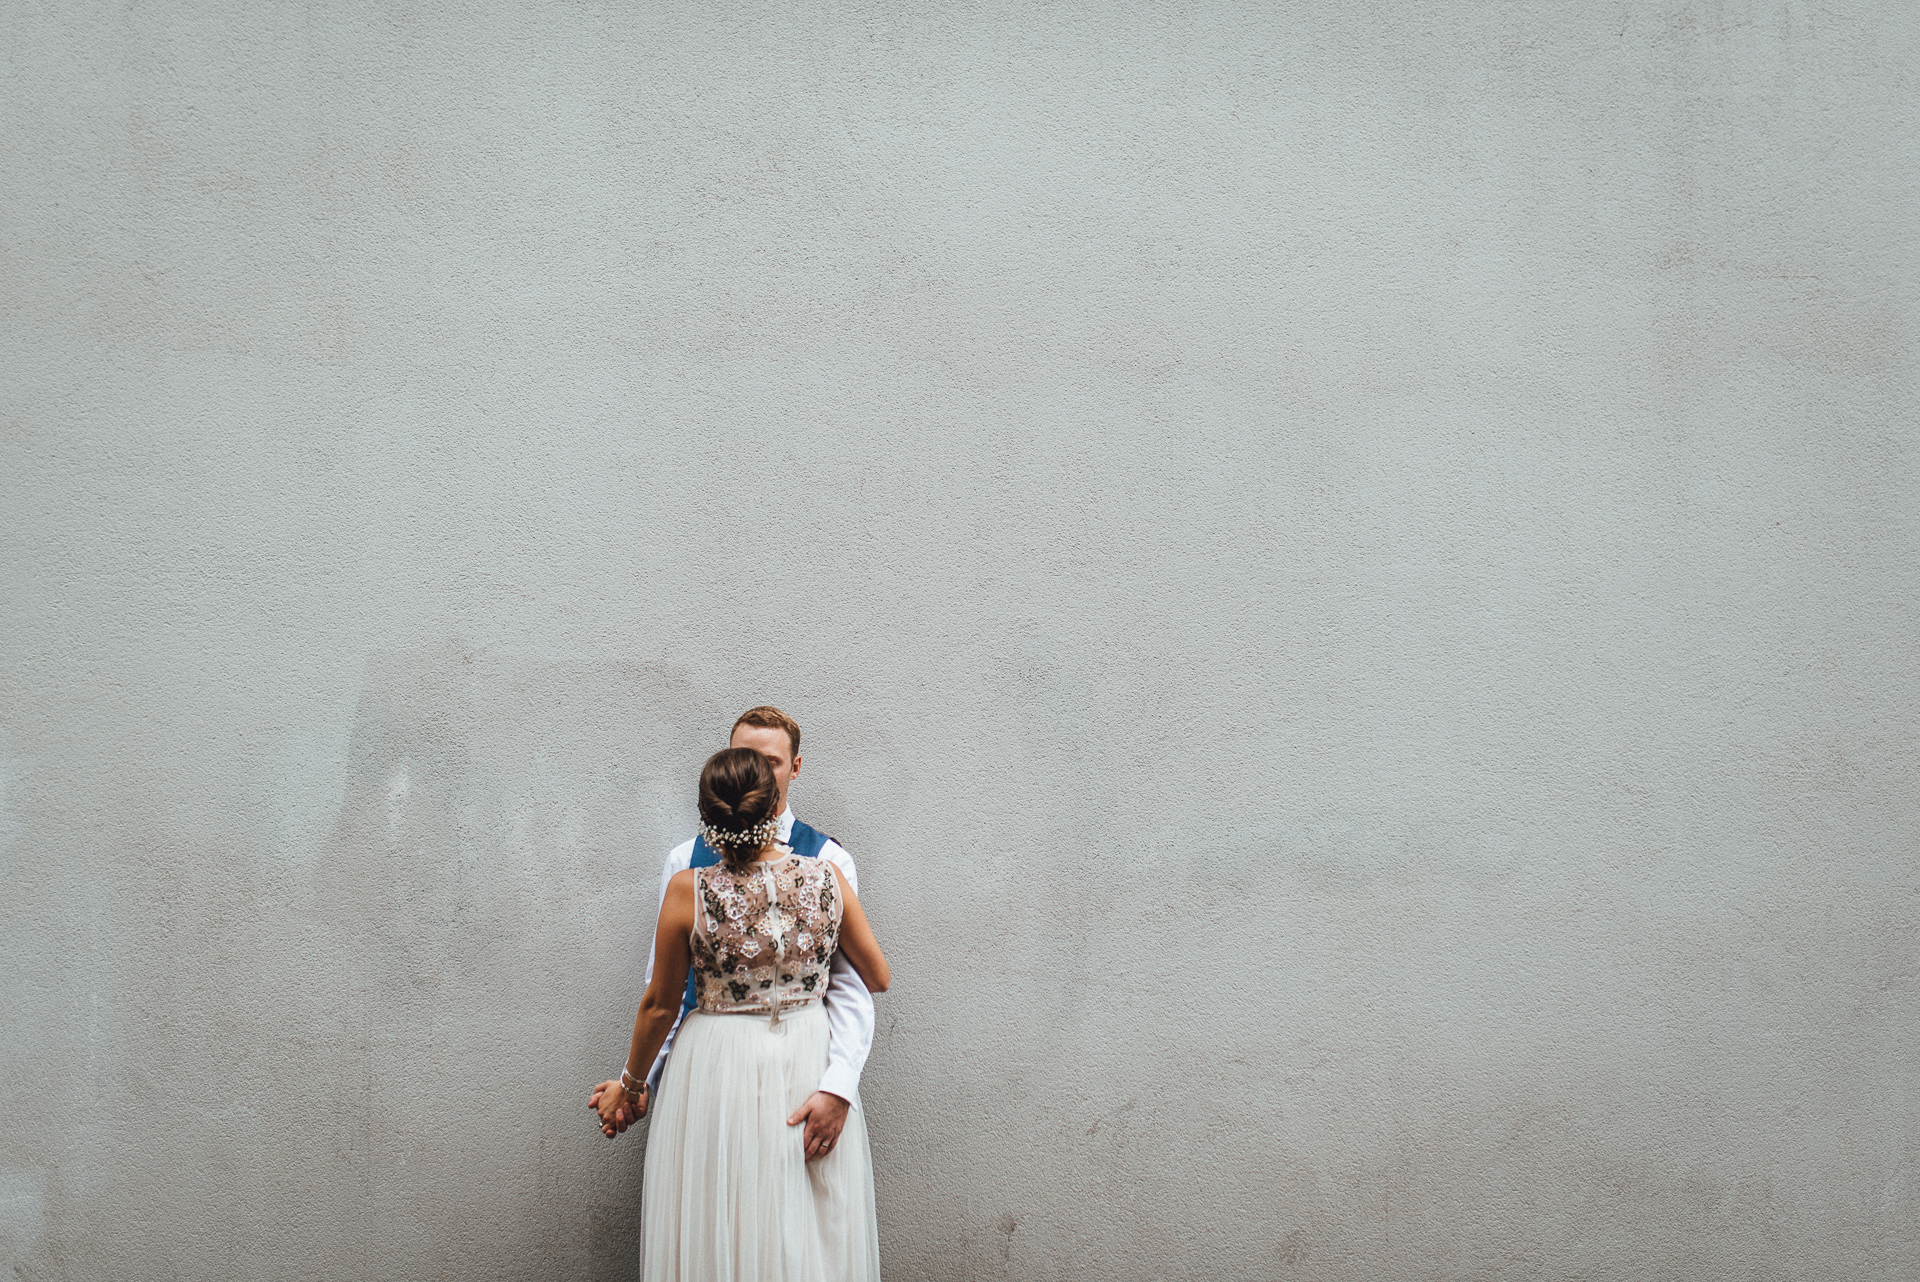 Bride and groom. Fun, creative urban wedding photography